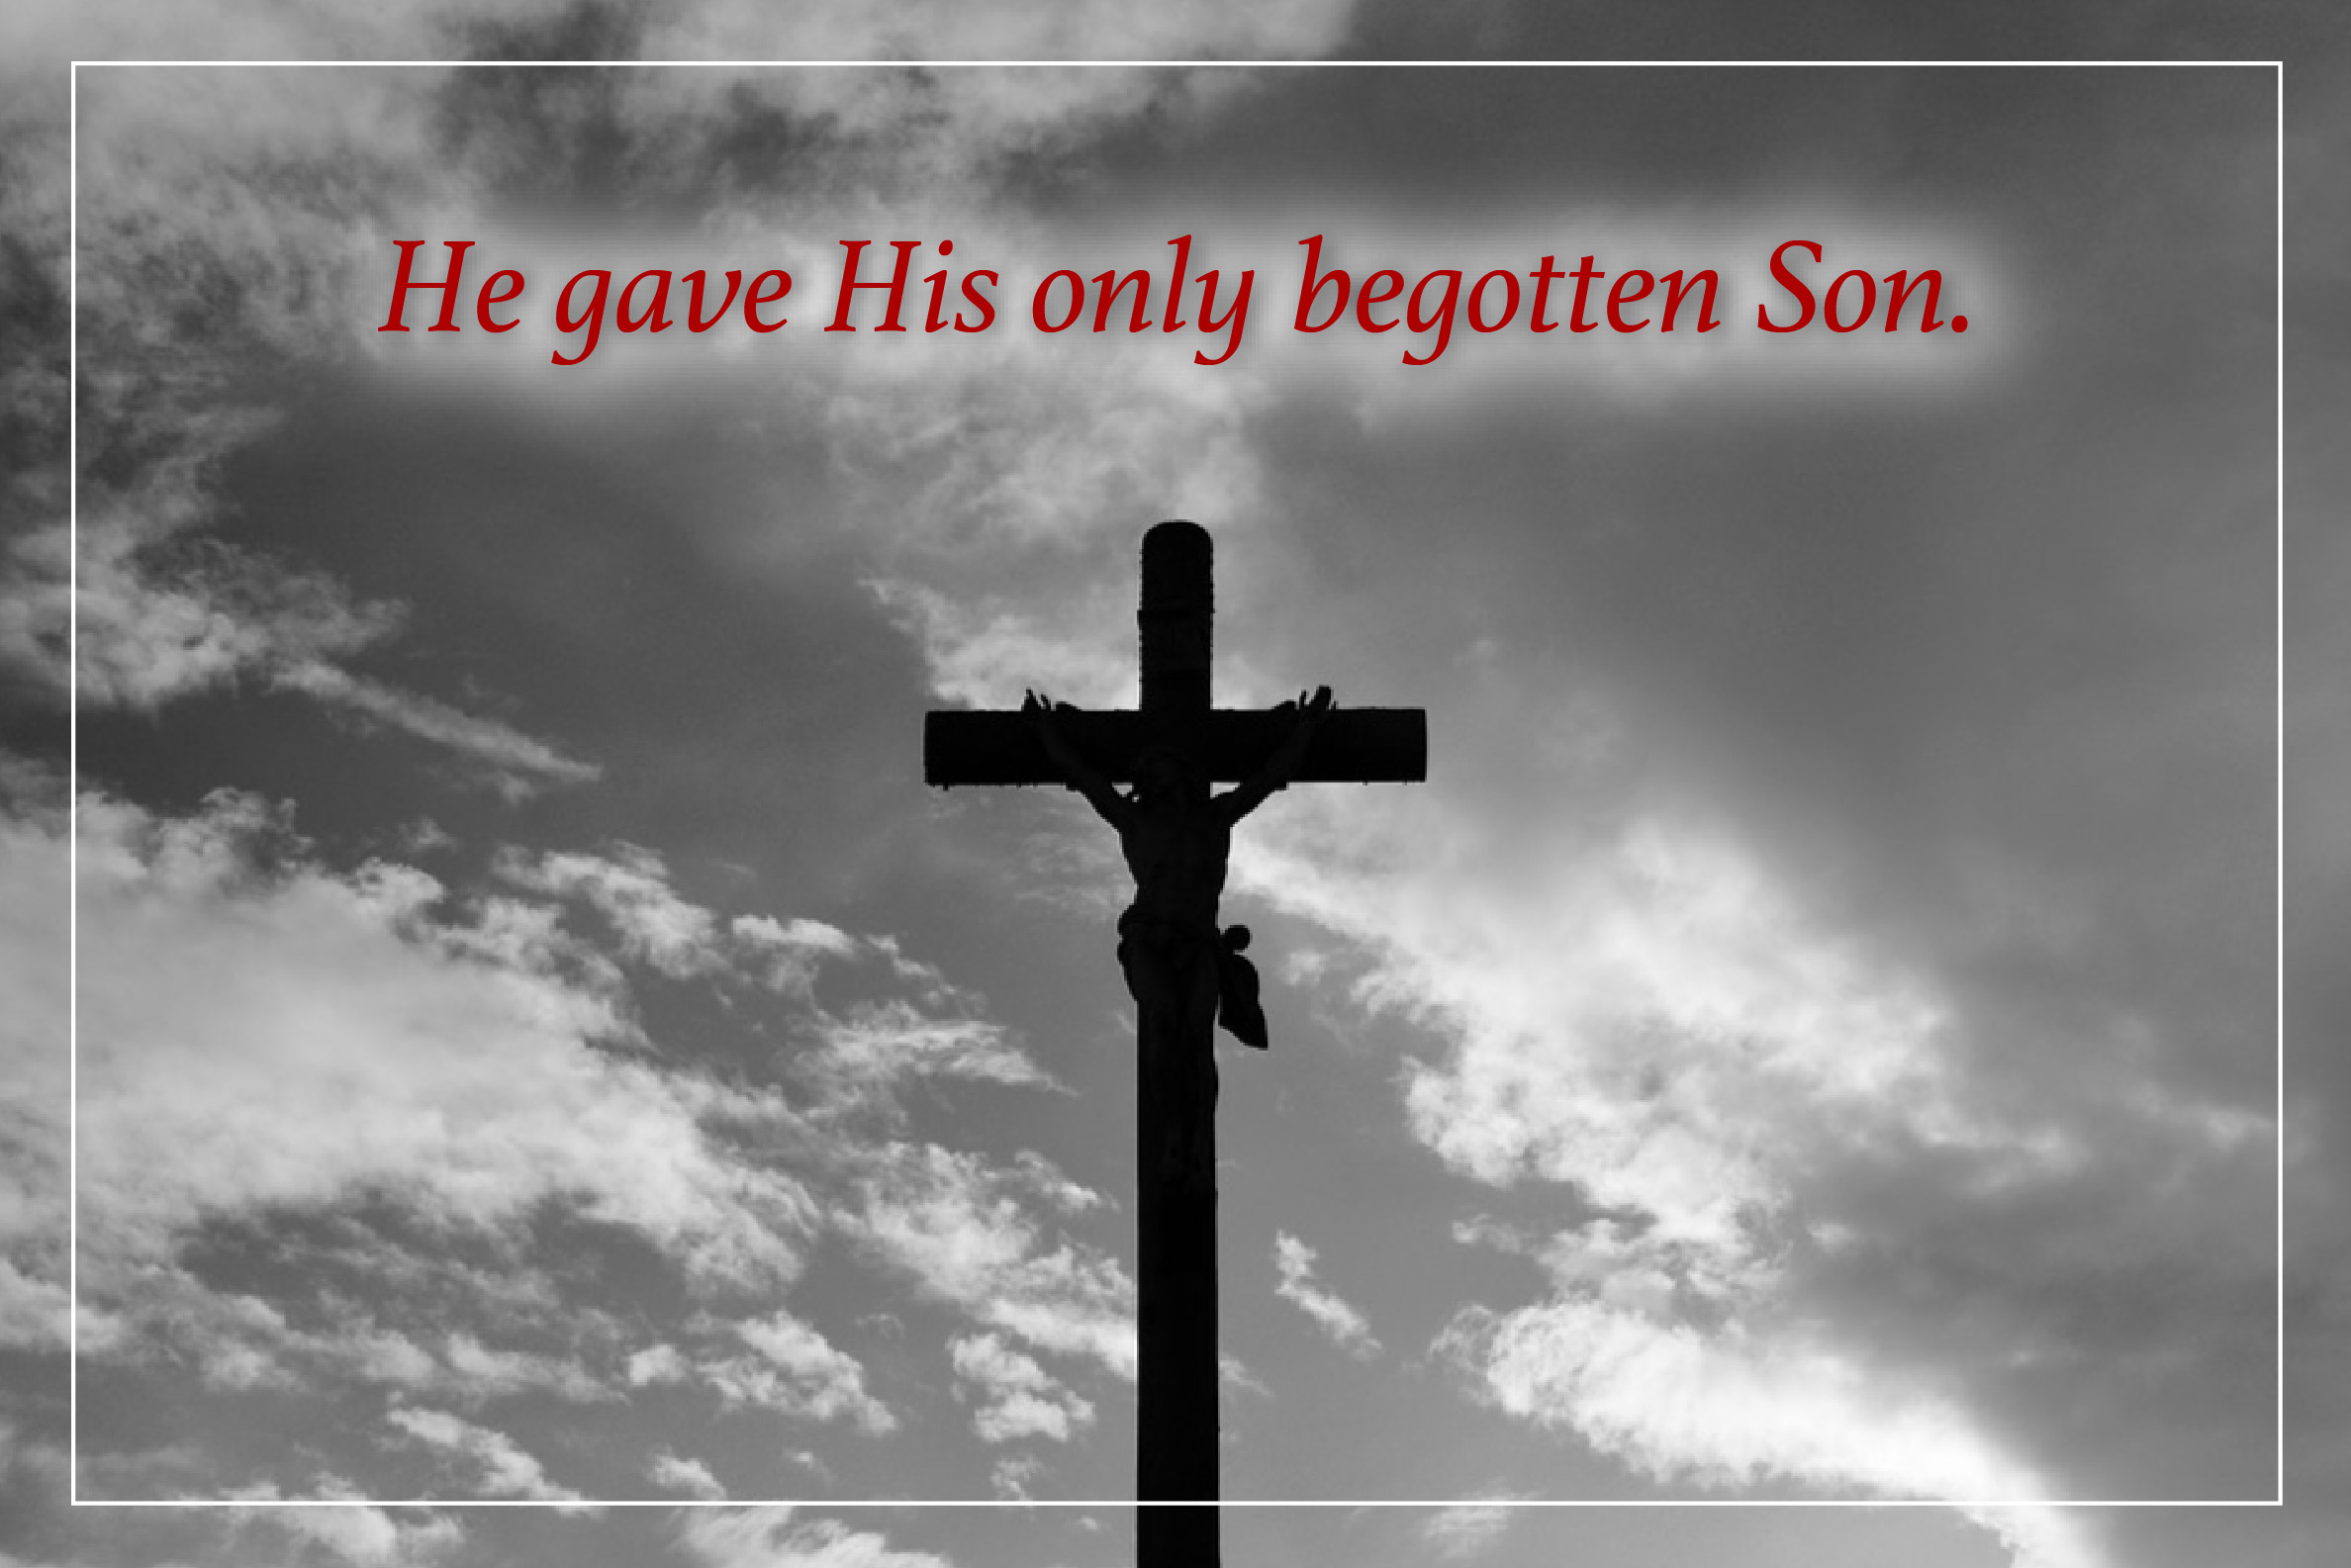 His only begotten Son-02